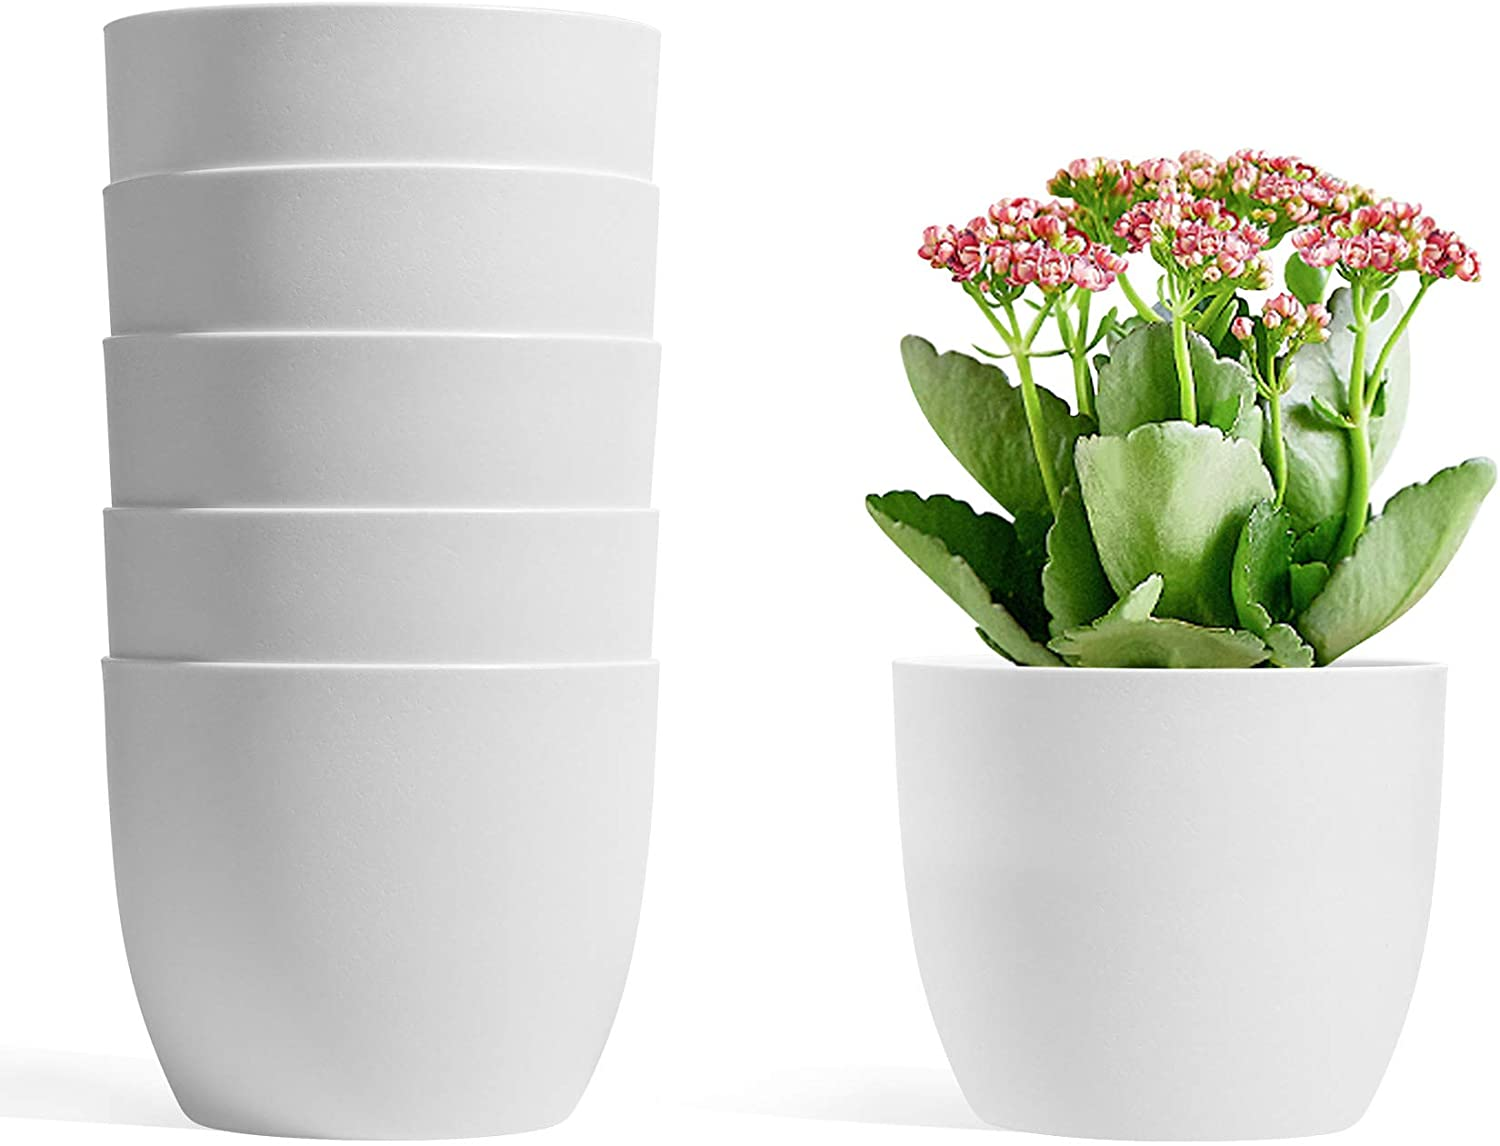 T4U 4.7 Inch Self Watering Planters Plastic Plant Pot, Modern Decorative Flower Pot/Window Box for All House Plants, Flowers, Herbs, African Violets, Succulents - White, Set of 6